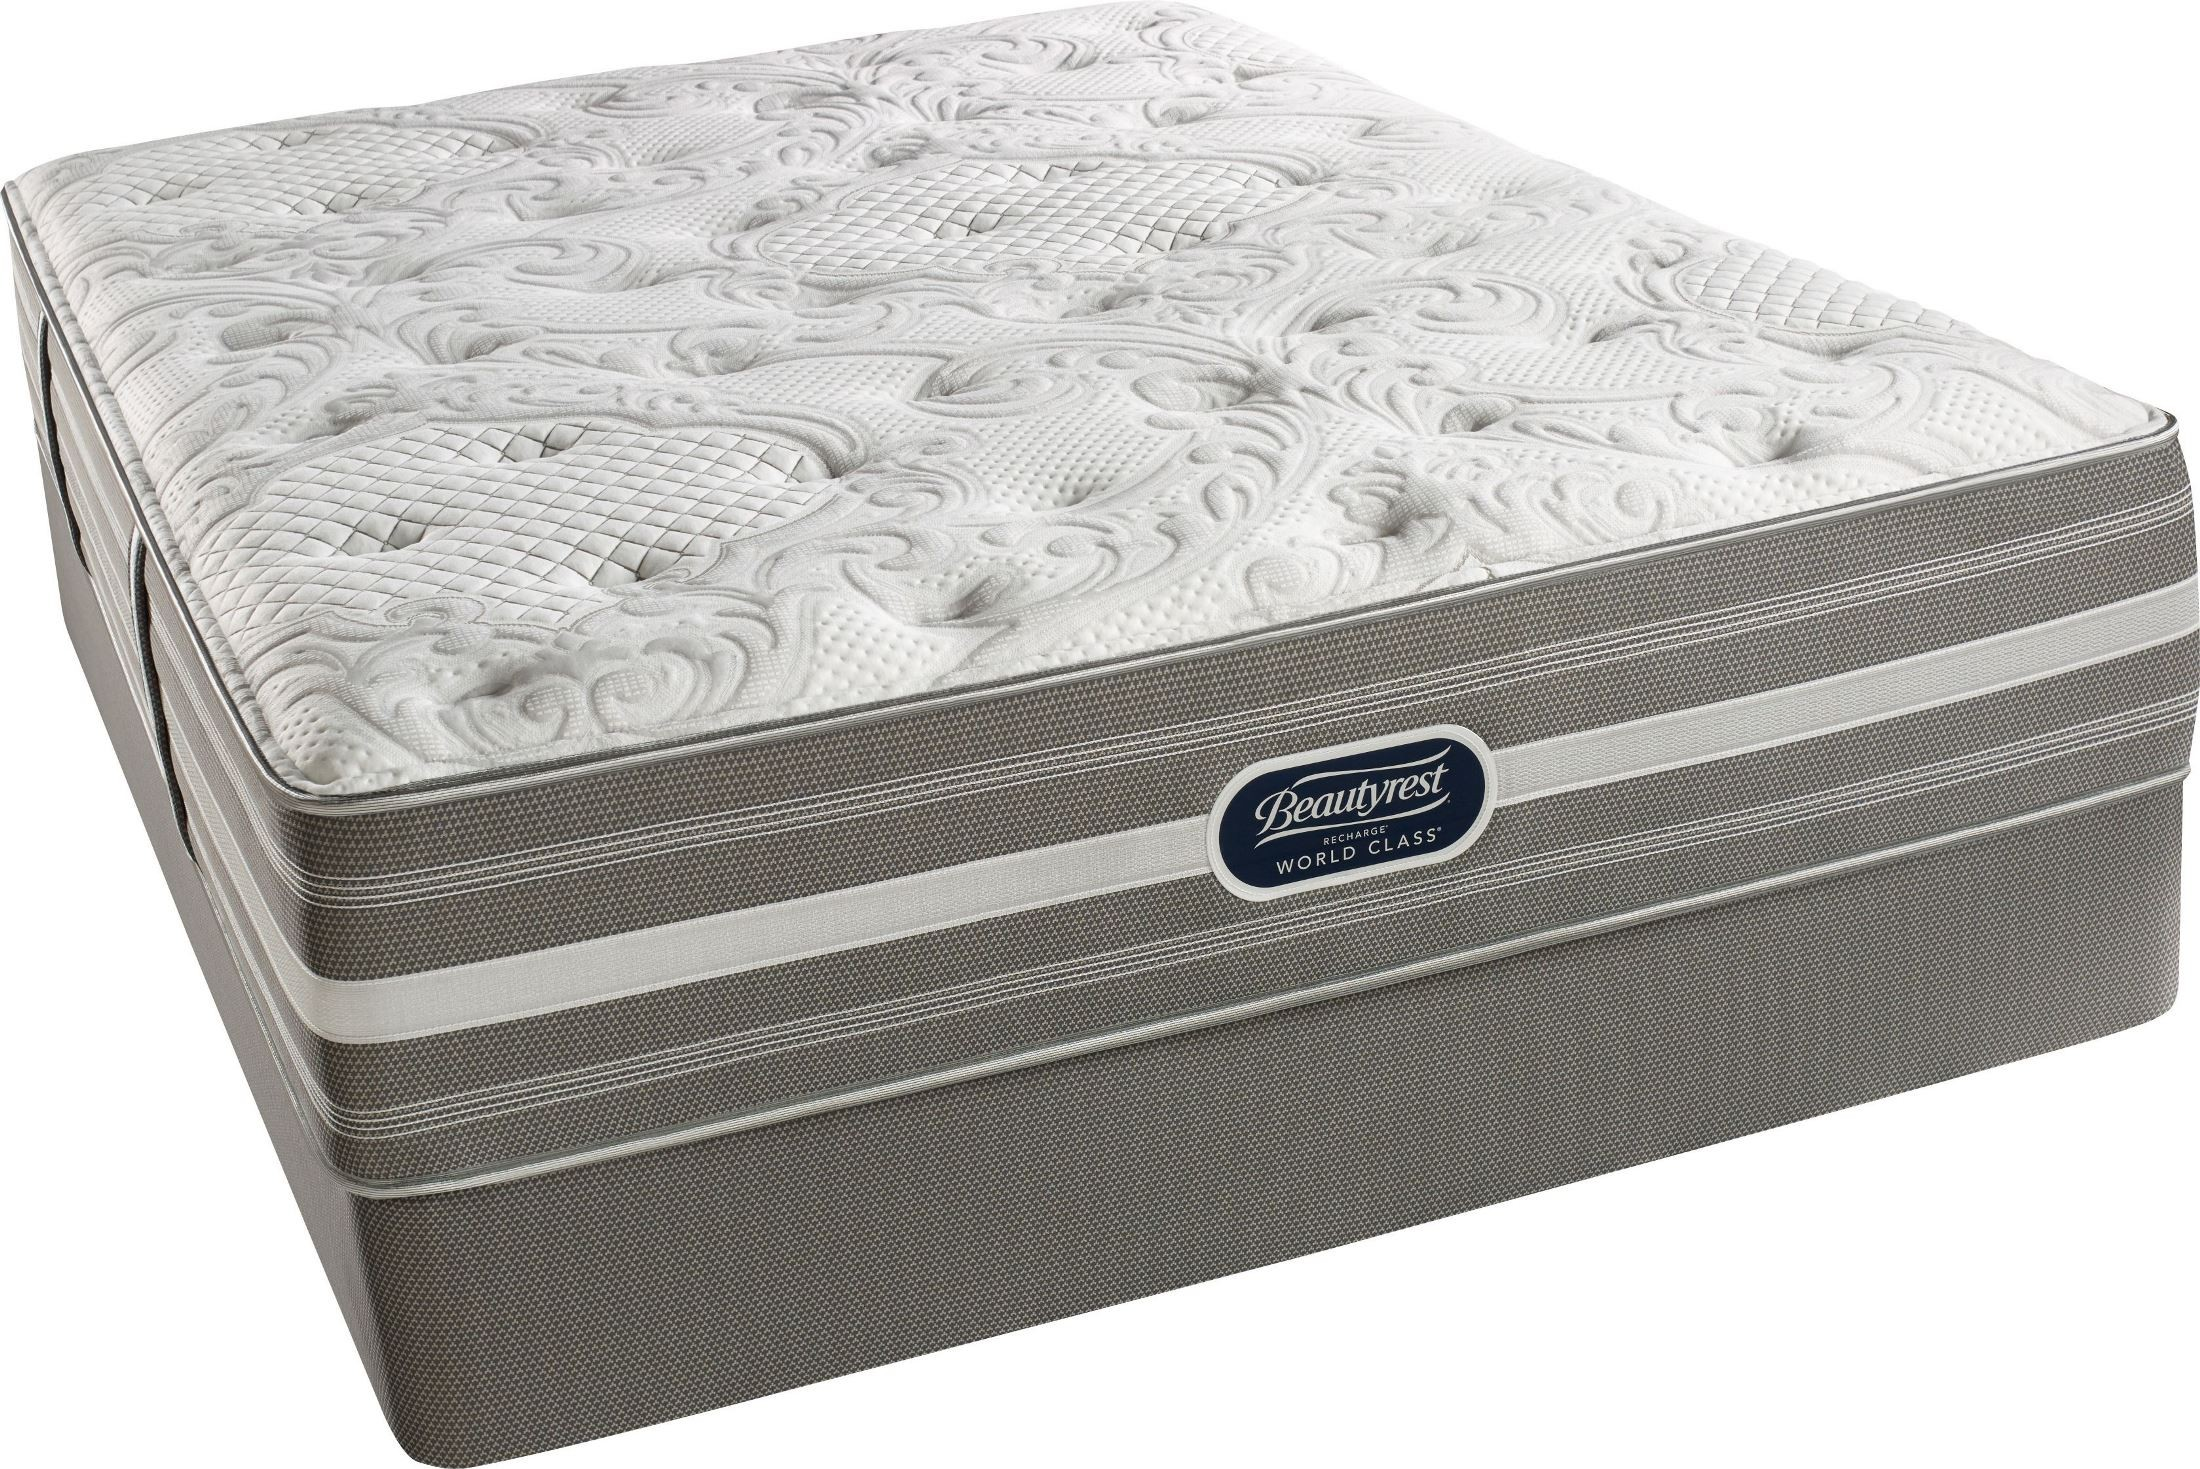 Recharge Chasewood King Luxury Firm Mattress Recharge Chasewood Luxury Firm King Simmons